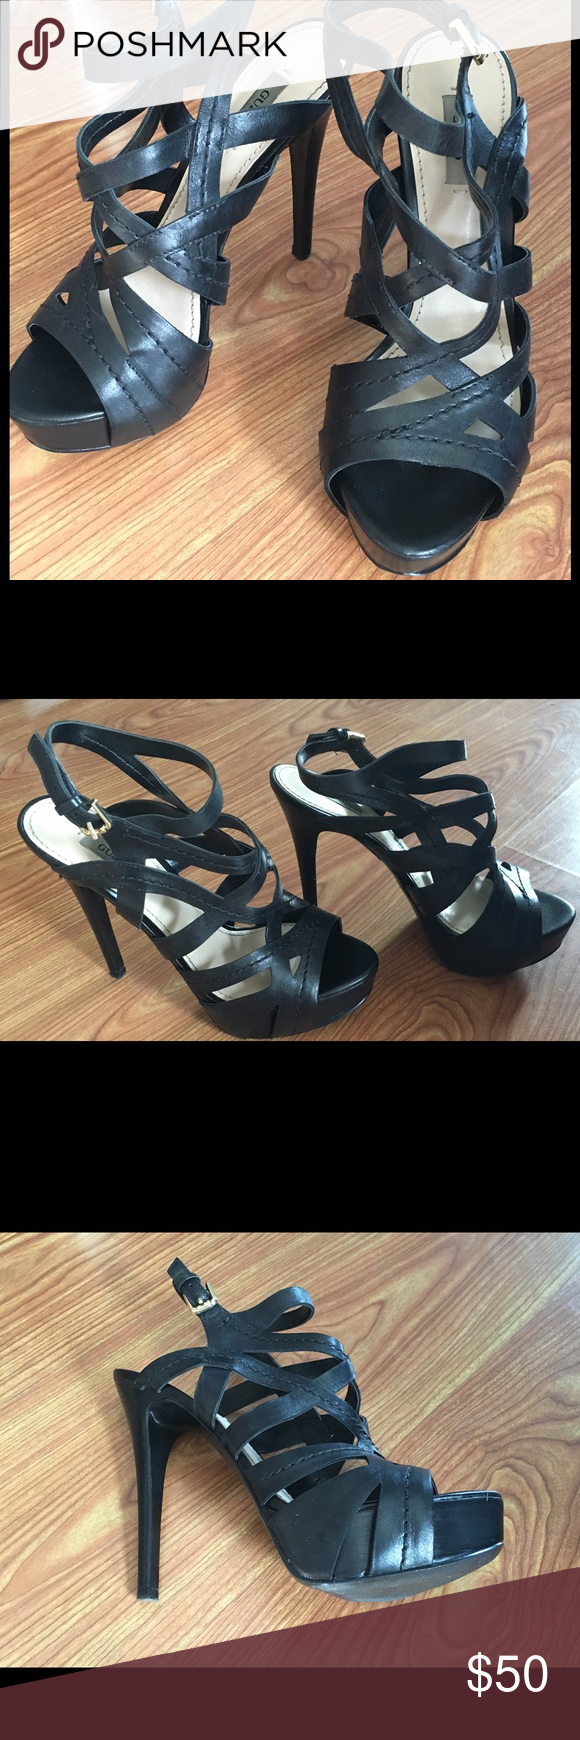 Guess Heels Only worn once Guess Shoes Heels